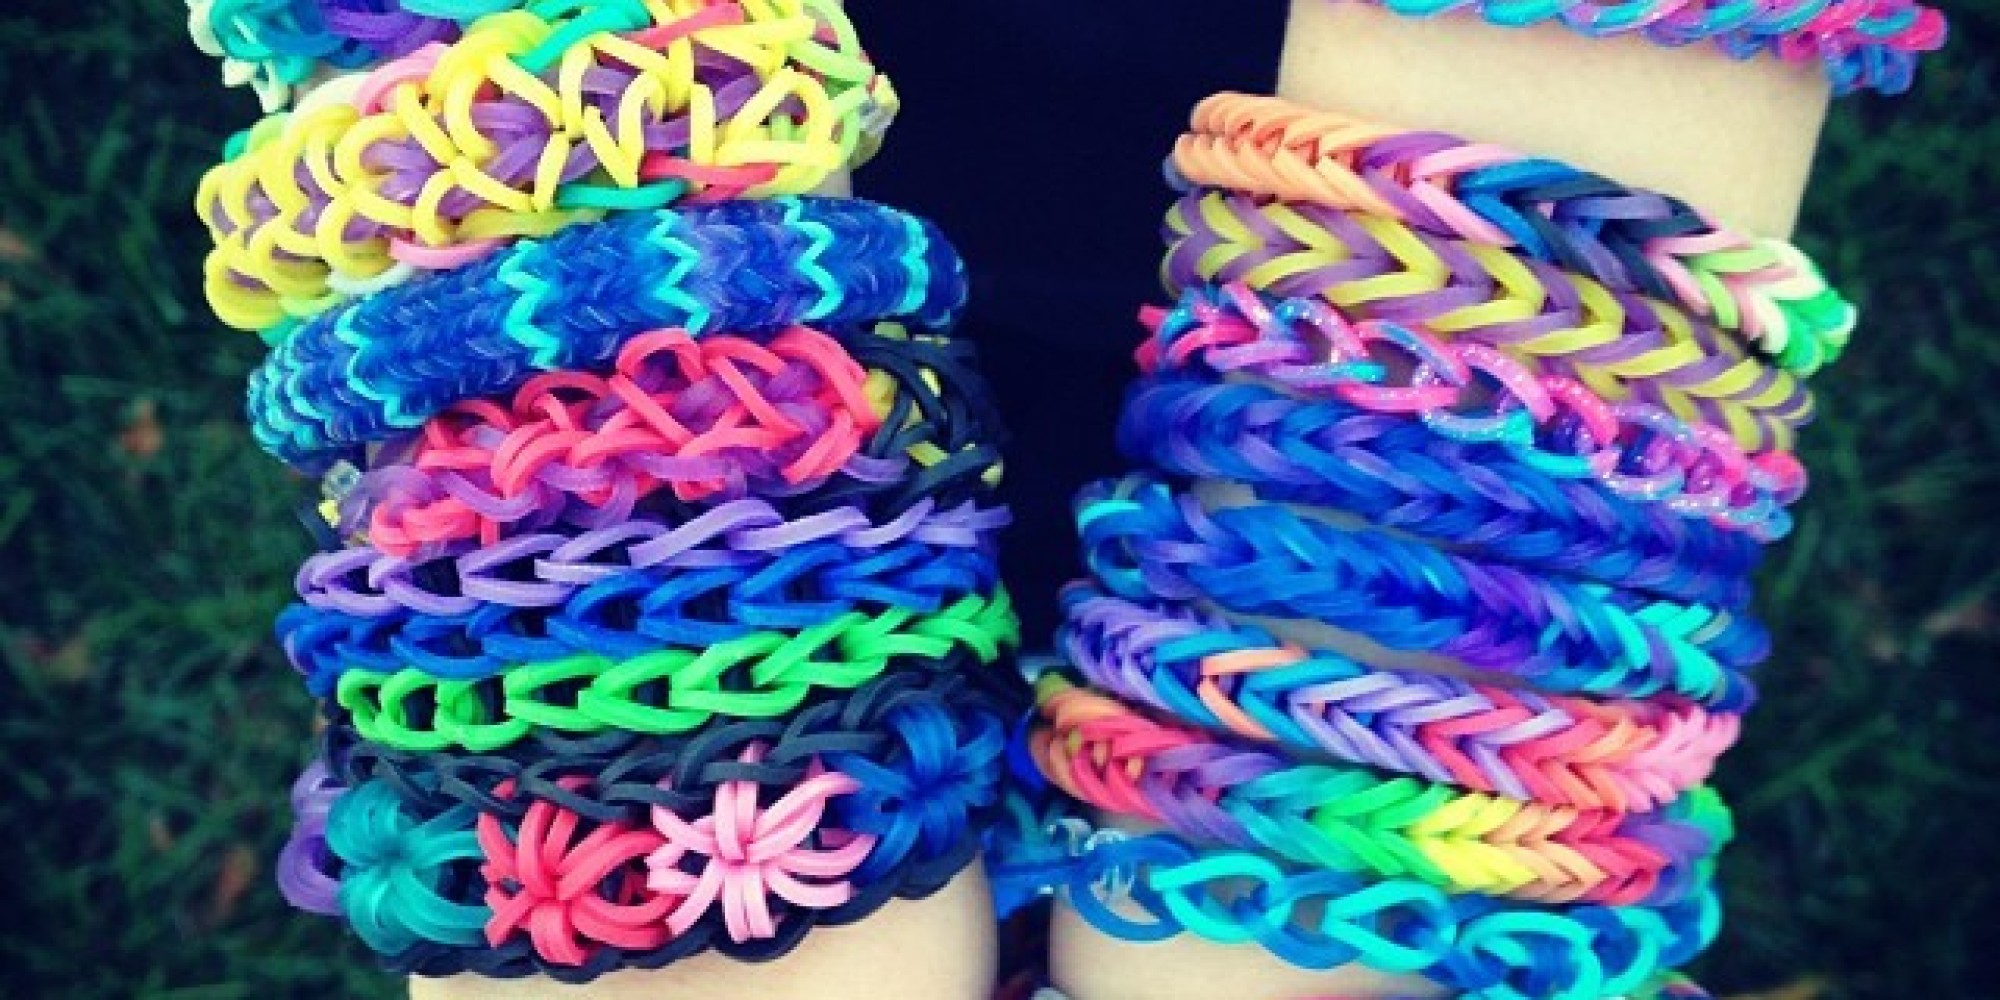 'Rainbow Loom' Bracelets Banned From Two NYC Schools ... Rainbow Loom